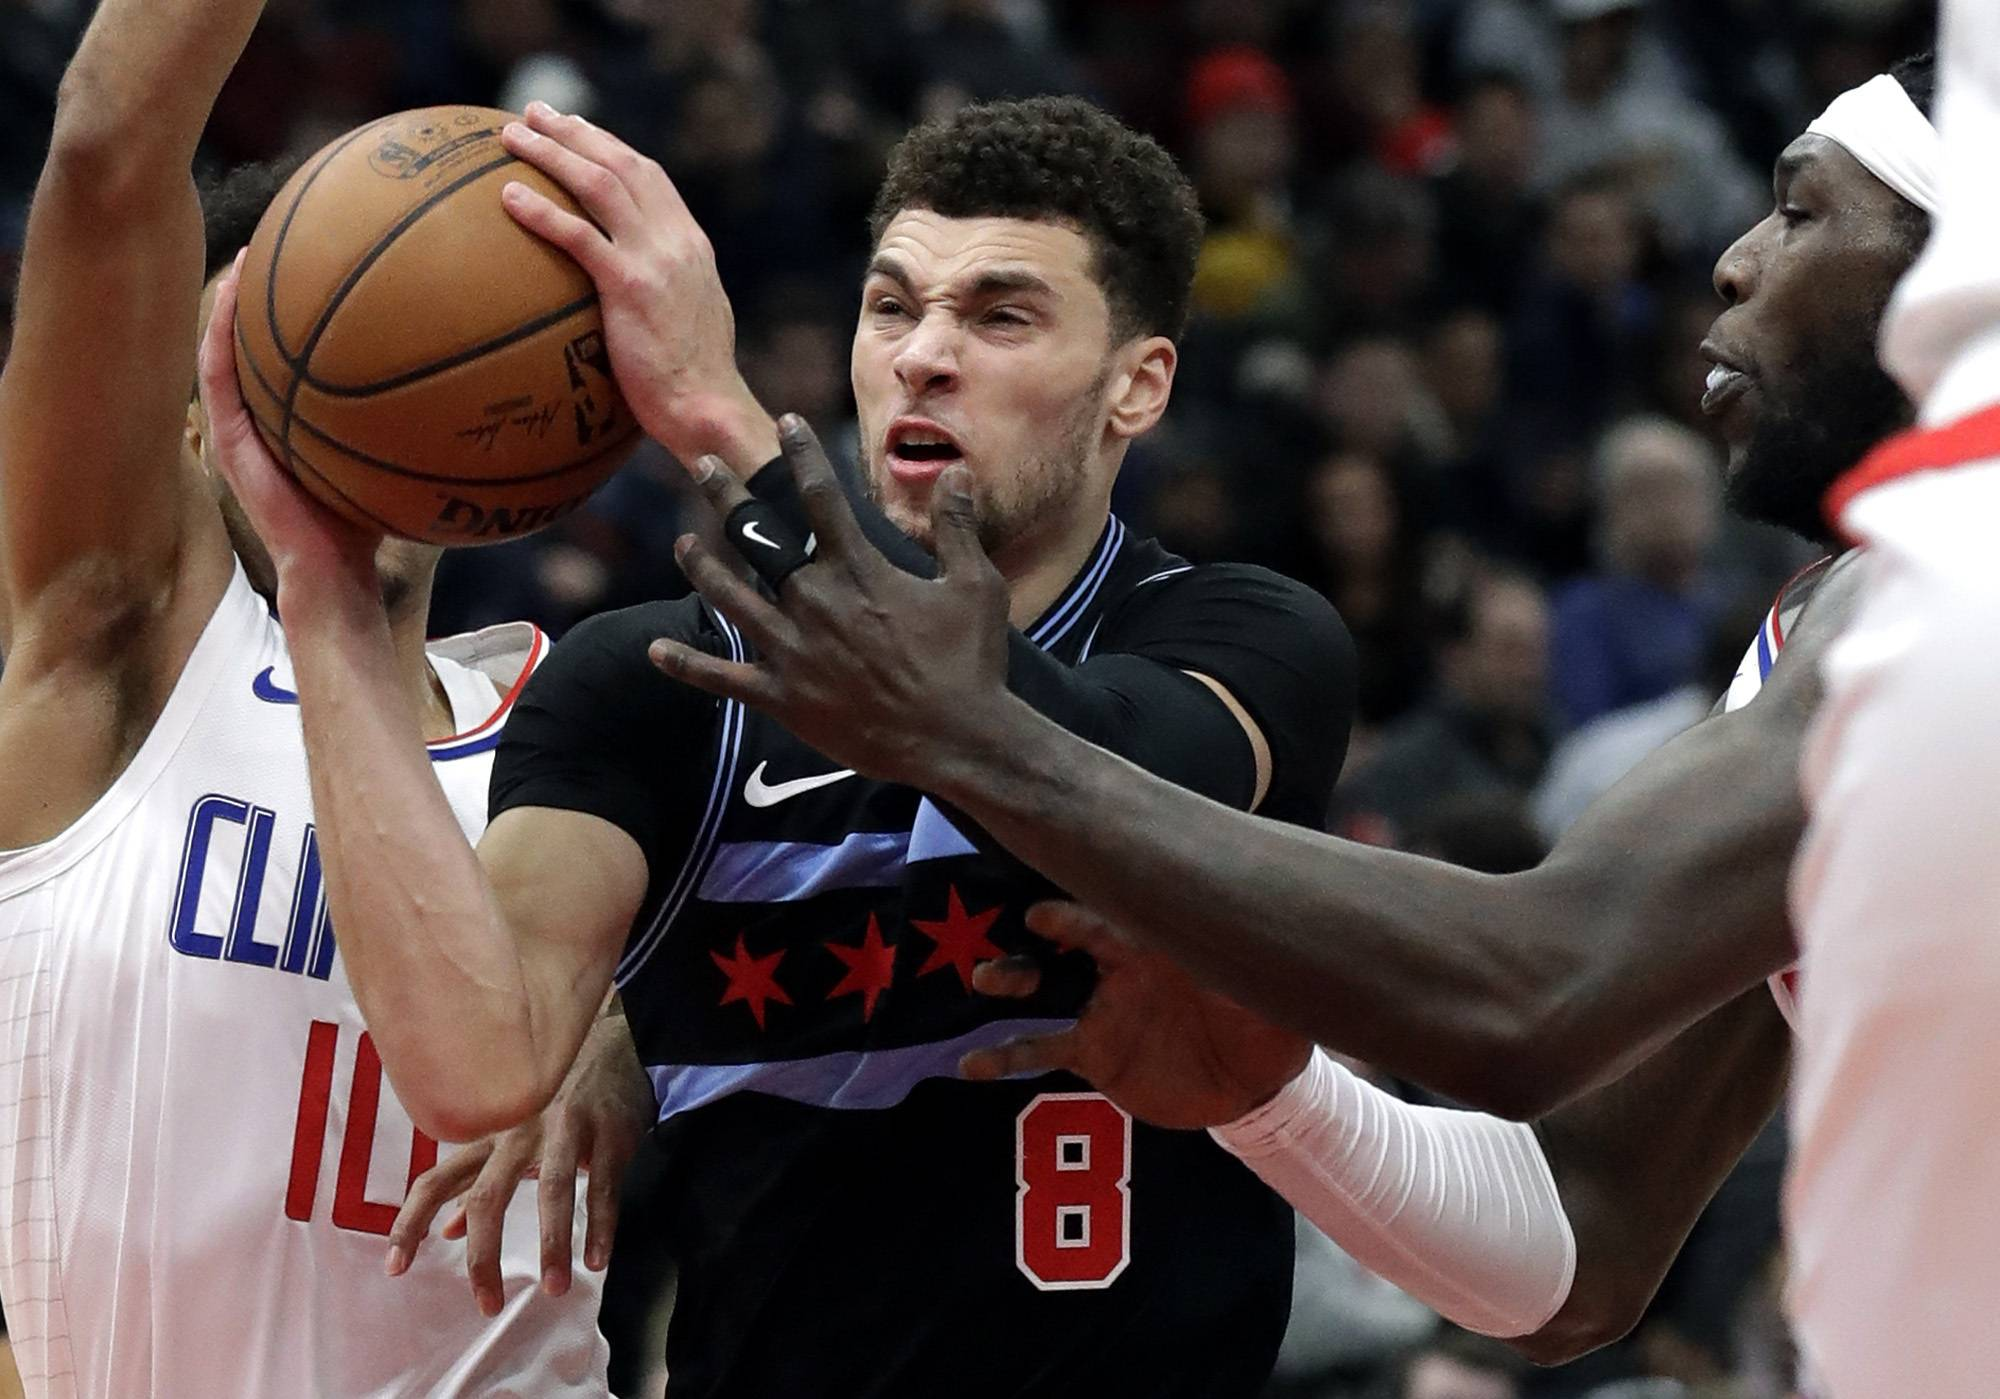 With chance to win, Bulls crumble in crunch time